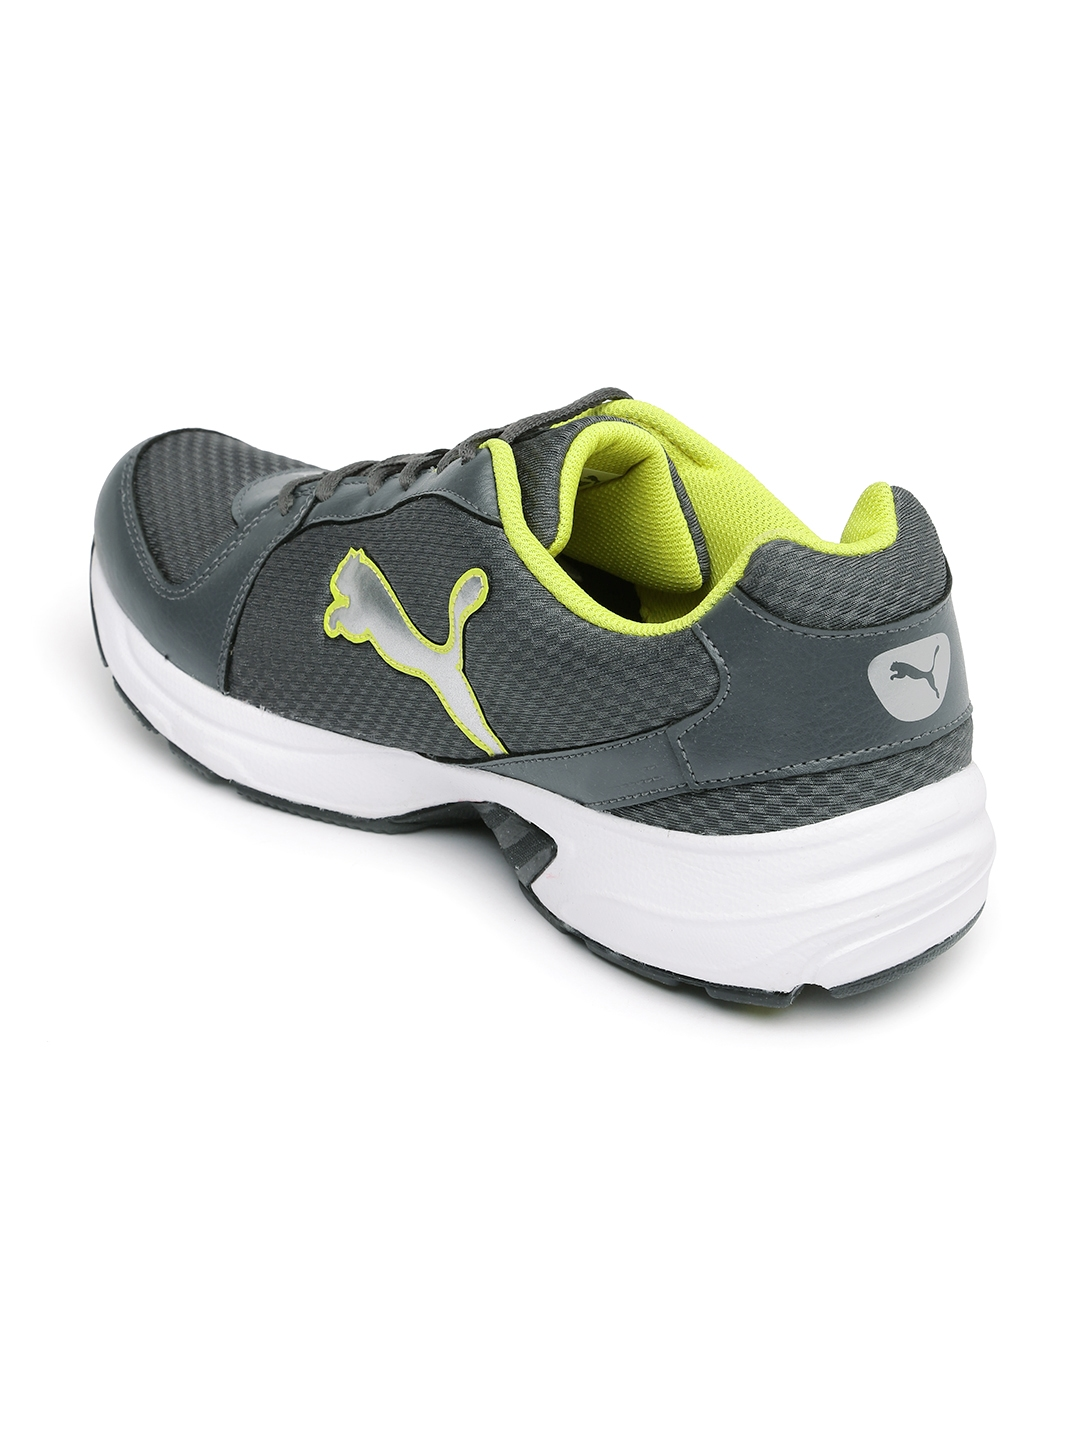 cdc93498c076da Buy PUMA Unisex Grey Bolster DP Running Shoes - Sports Shoes for Unisex  1125005